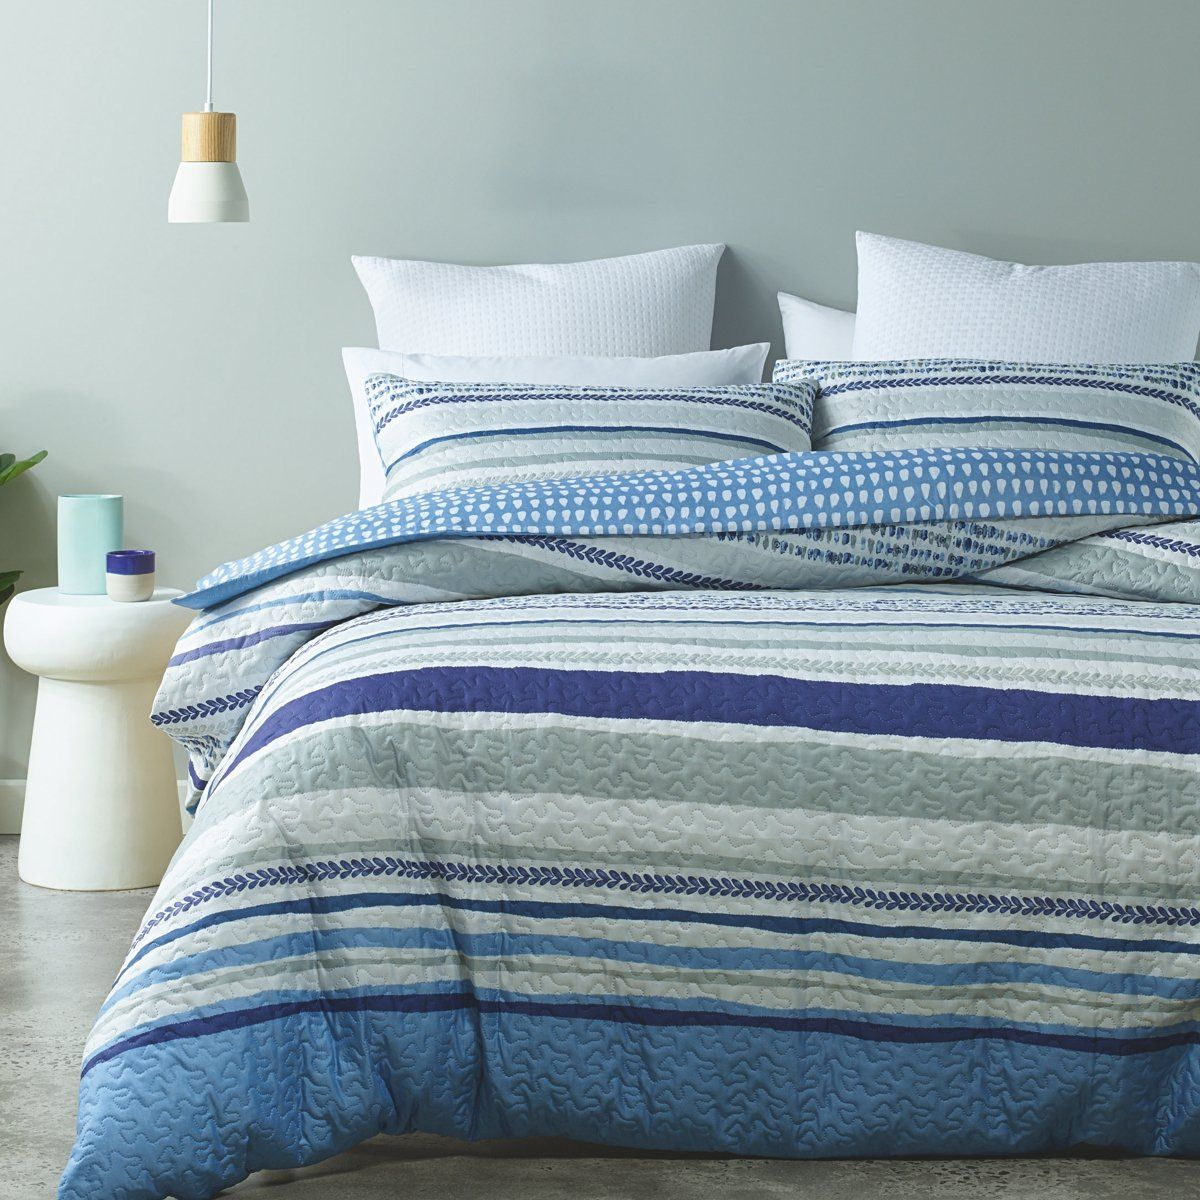 Make Your Bedroom Focal Point As Calming As Phase 2 Waterford Quilt Cover Set This Set Is Ideal As A Throw Over Or Cove Quilt Cover Sets Quilt Cover King Beds